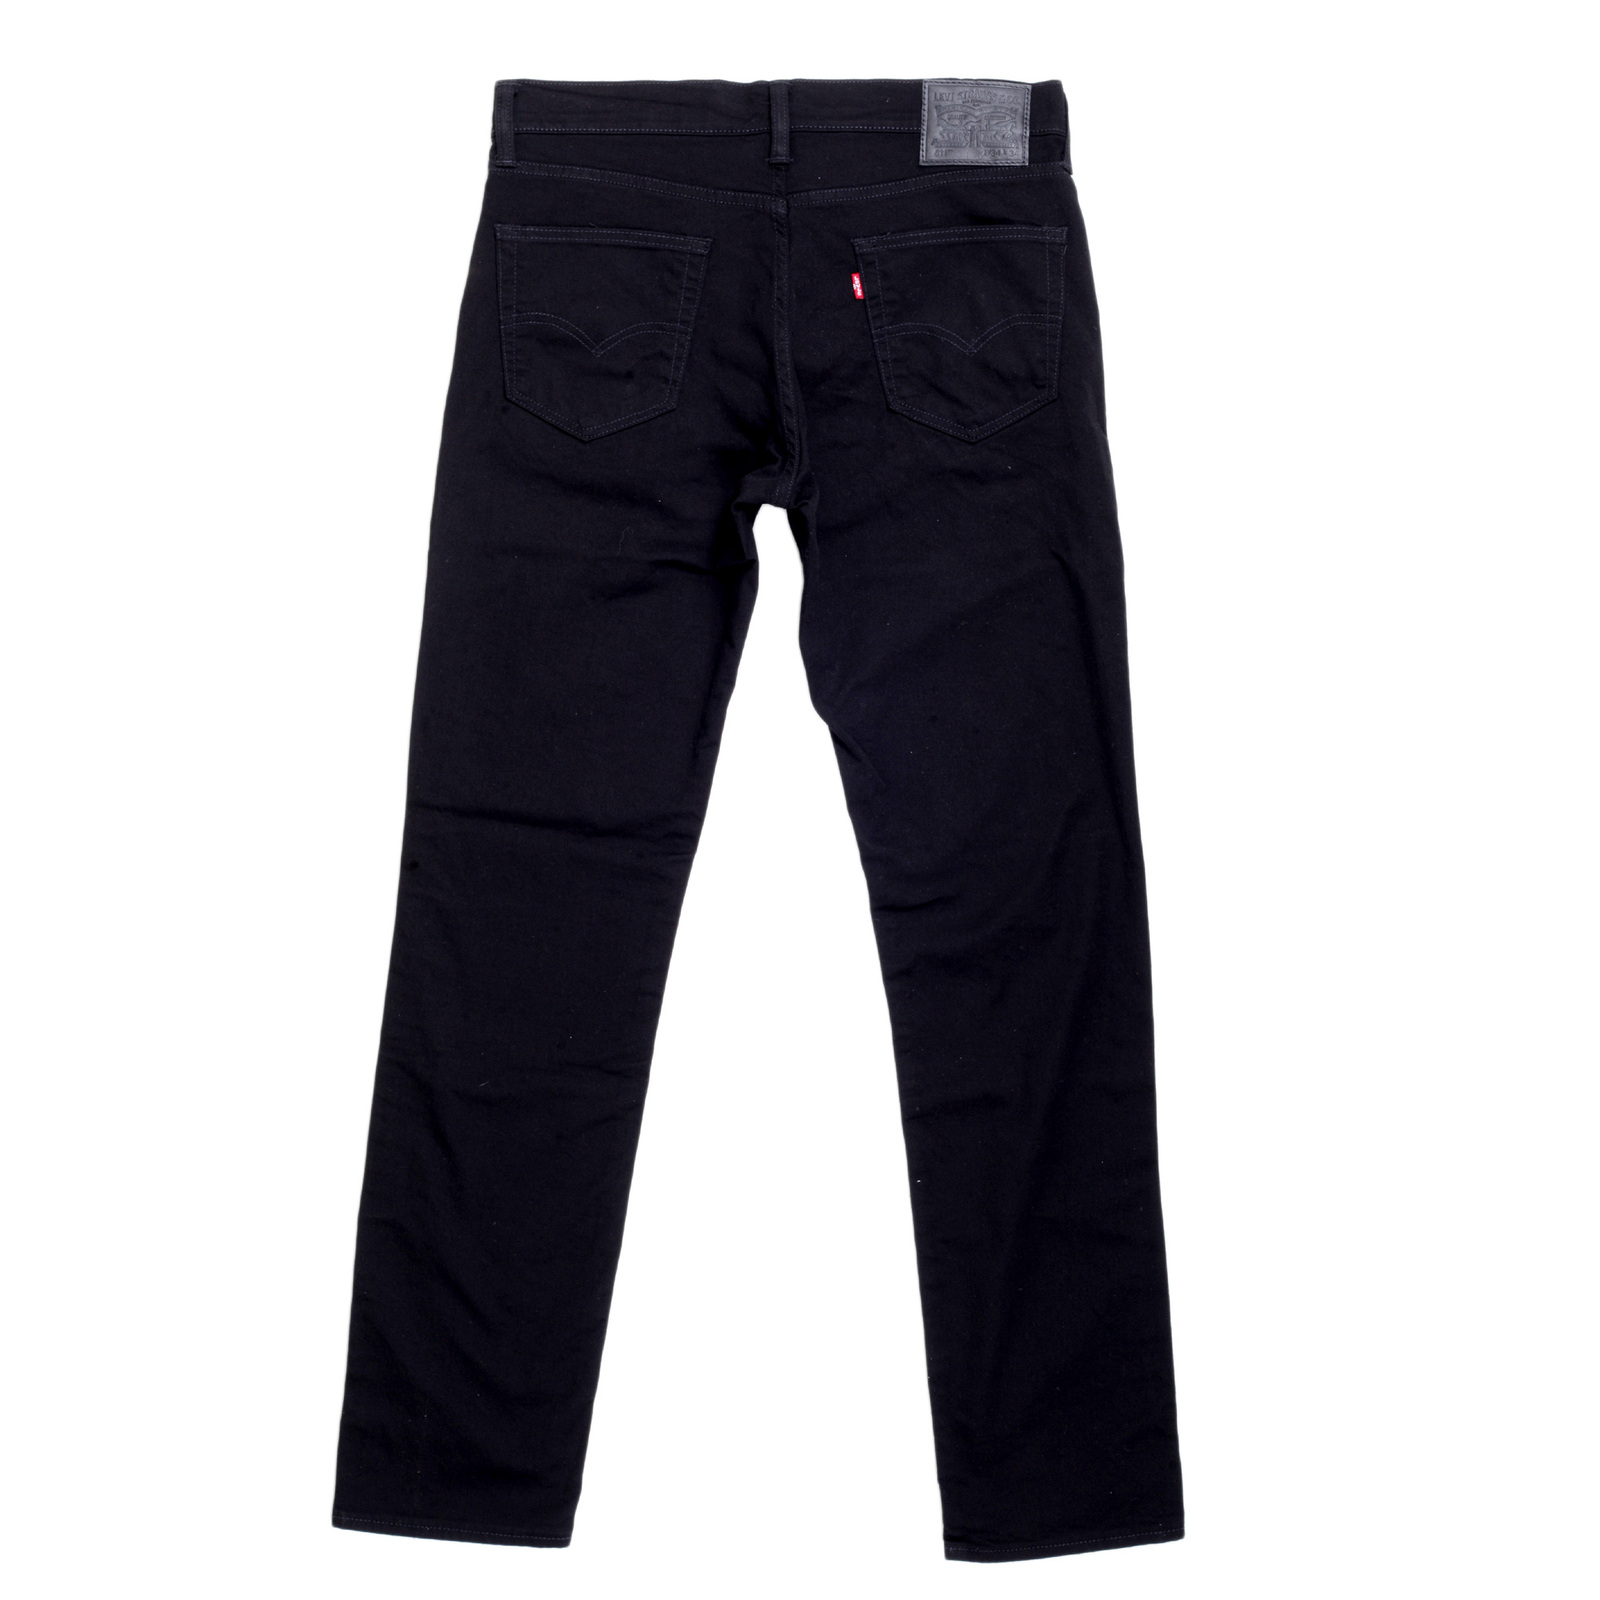 Levi's Men's Slim Fit Jeans, Size: 36x29, Black Stretch. A modern slim with room to move, the ™ Slim Fit Stretch Jeans are a classic since right now. These jeans sit below the waist with a slim fit from hip to ankle. This pair has just the right amount of stretch for all-day comfort.